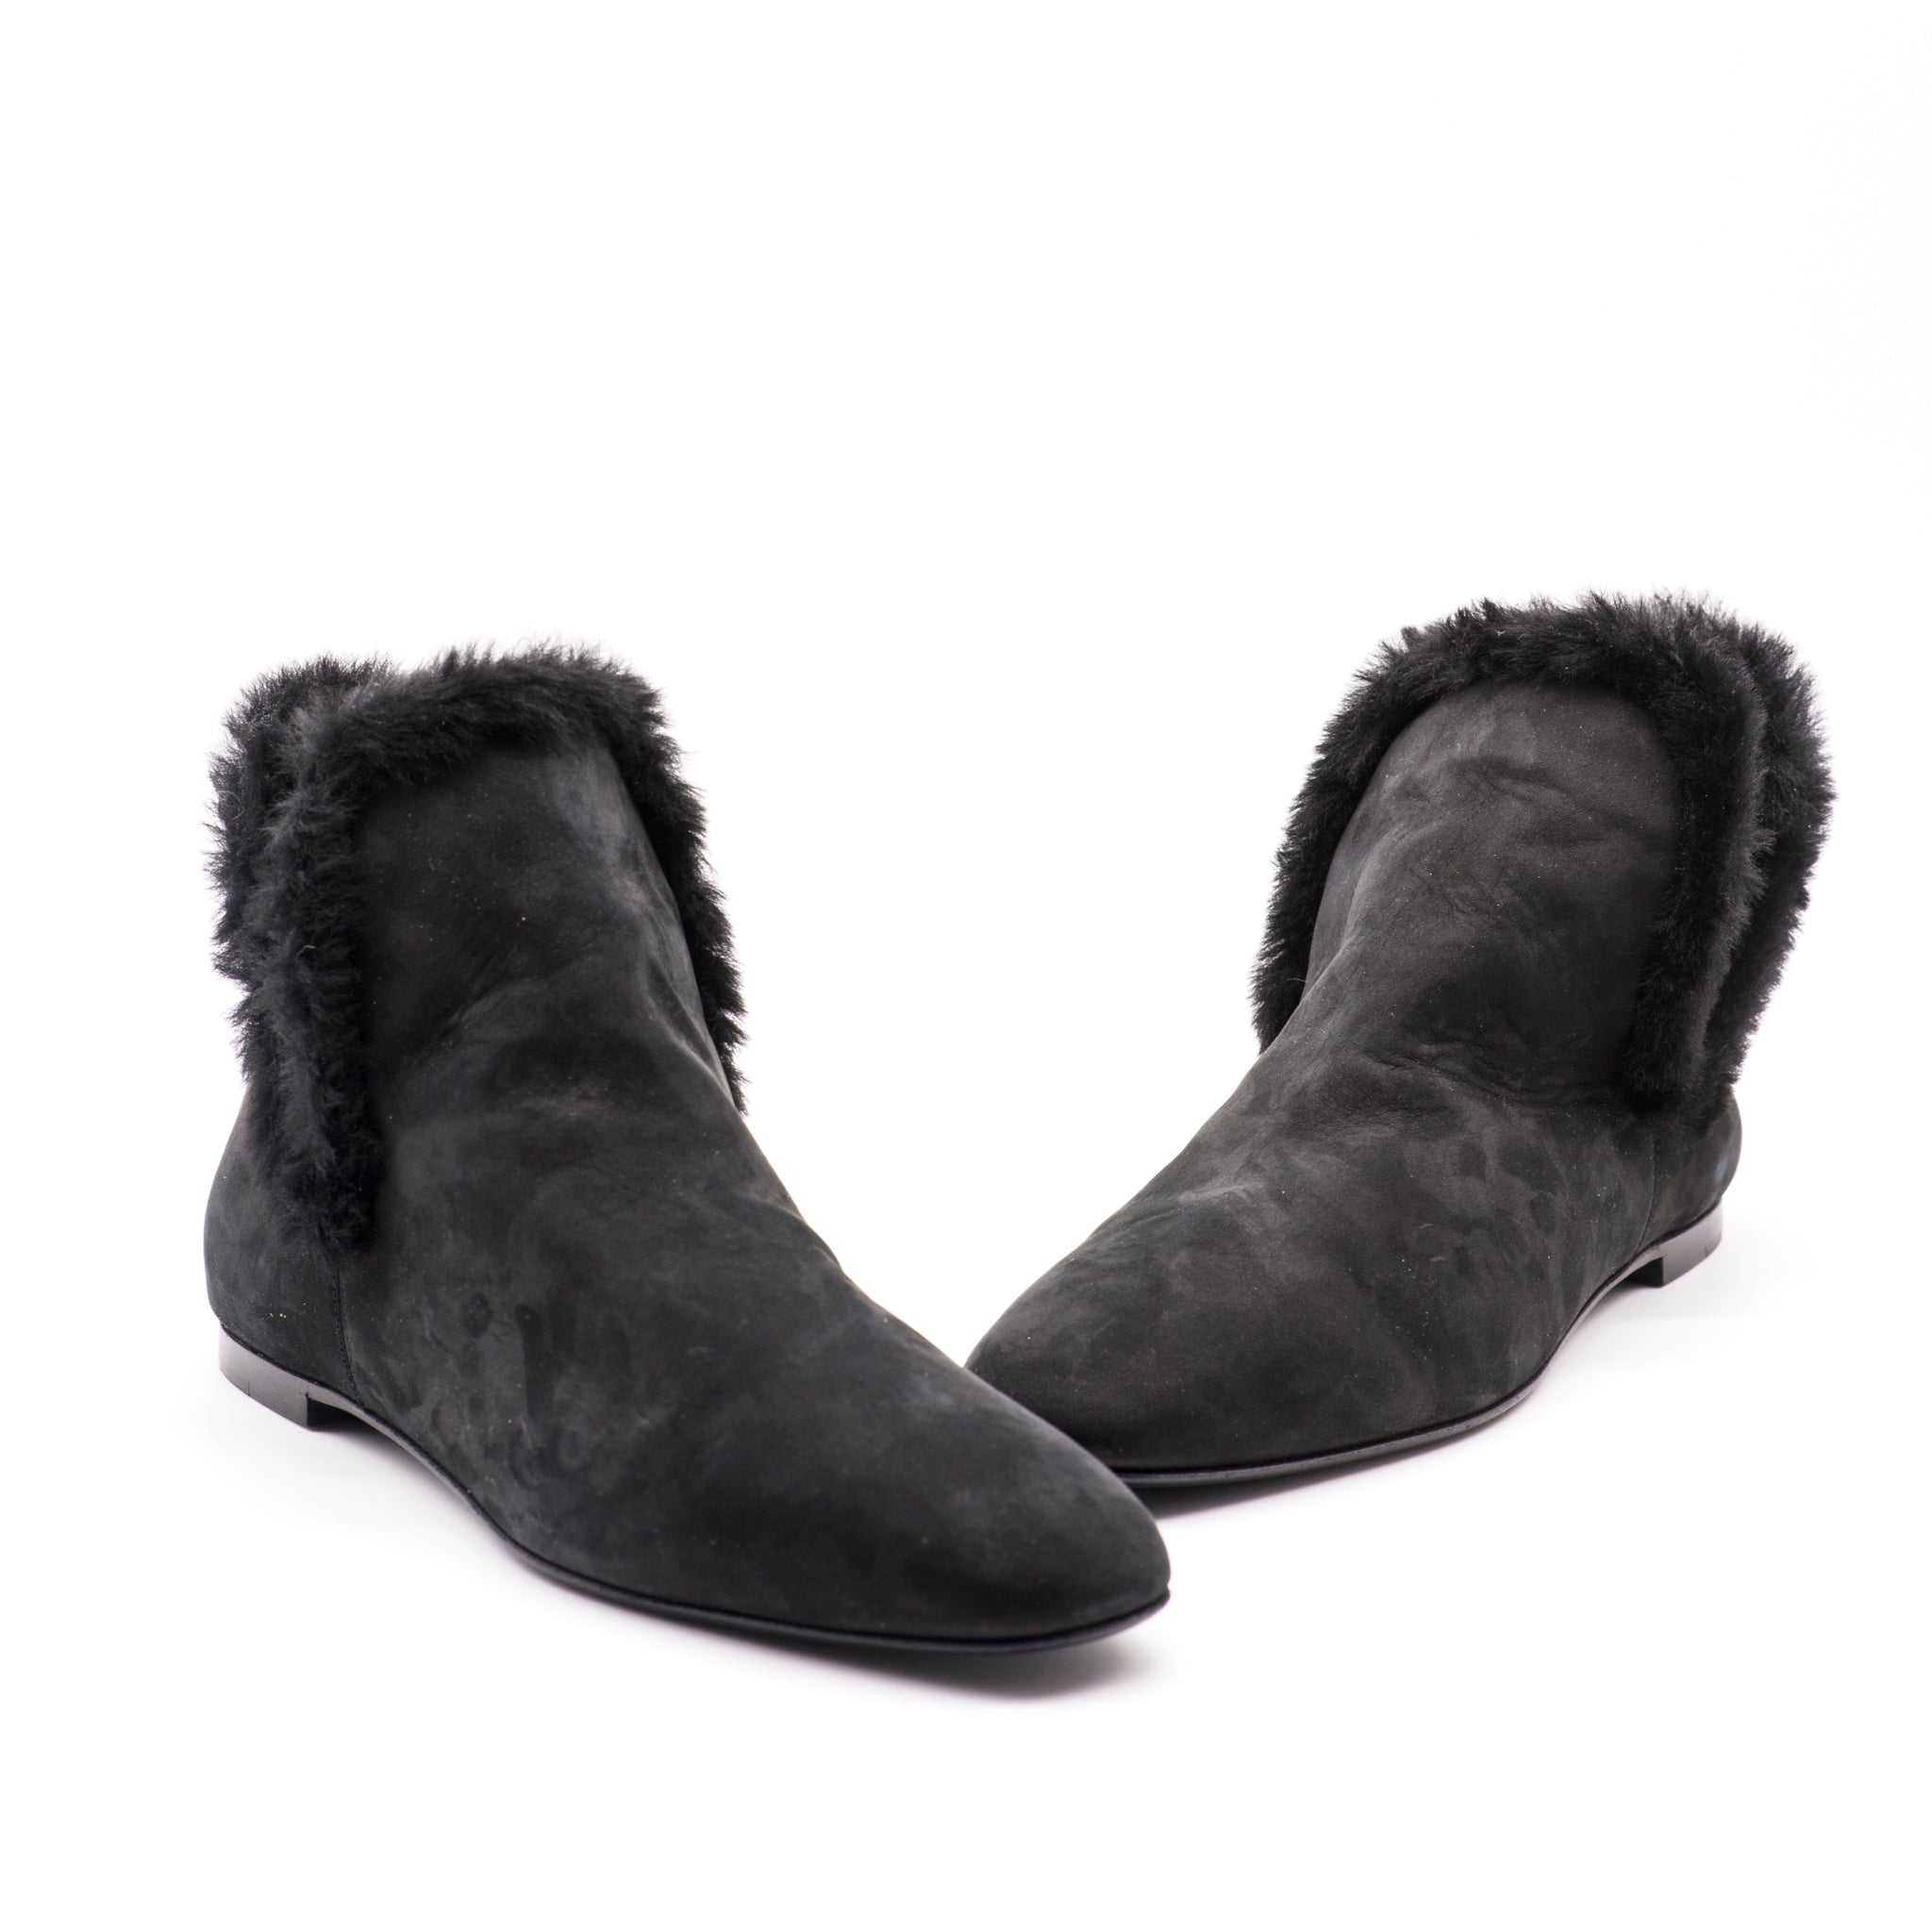 'Sold' THE ROW Eros Black Shearling Trimmed Nubuck Suede Square Toe Ankle Boots 38.5 GC